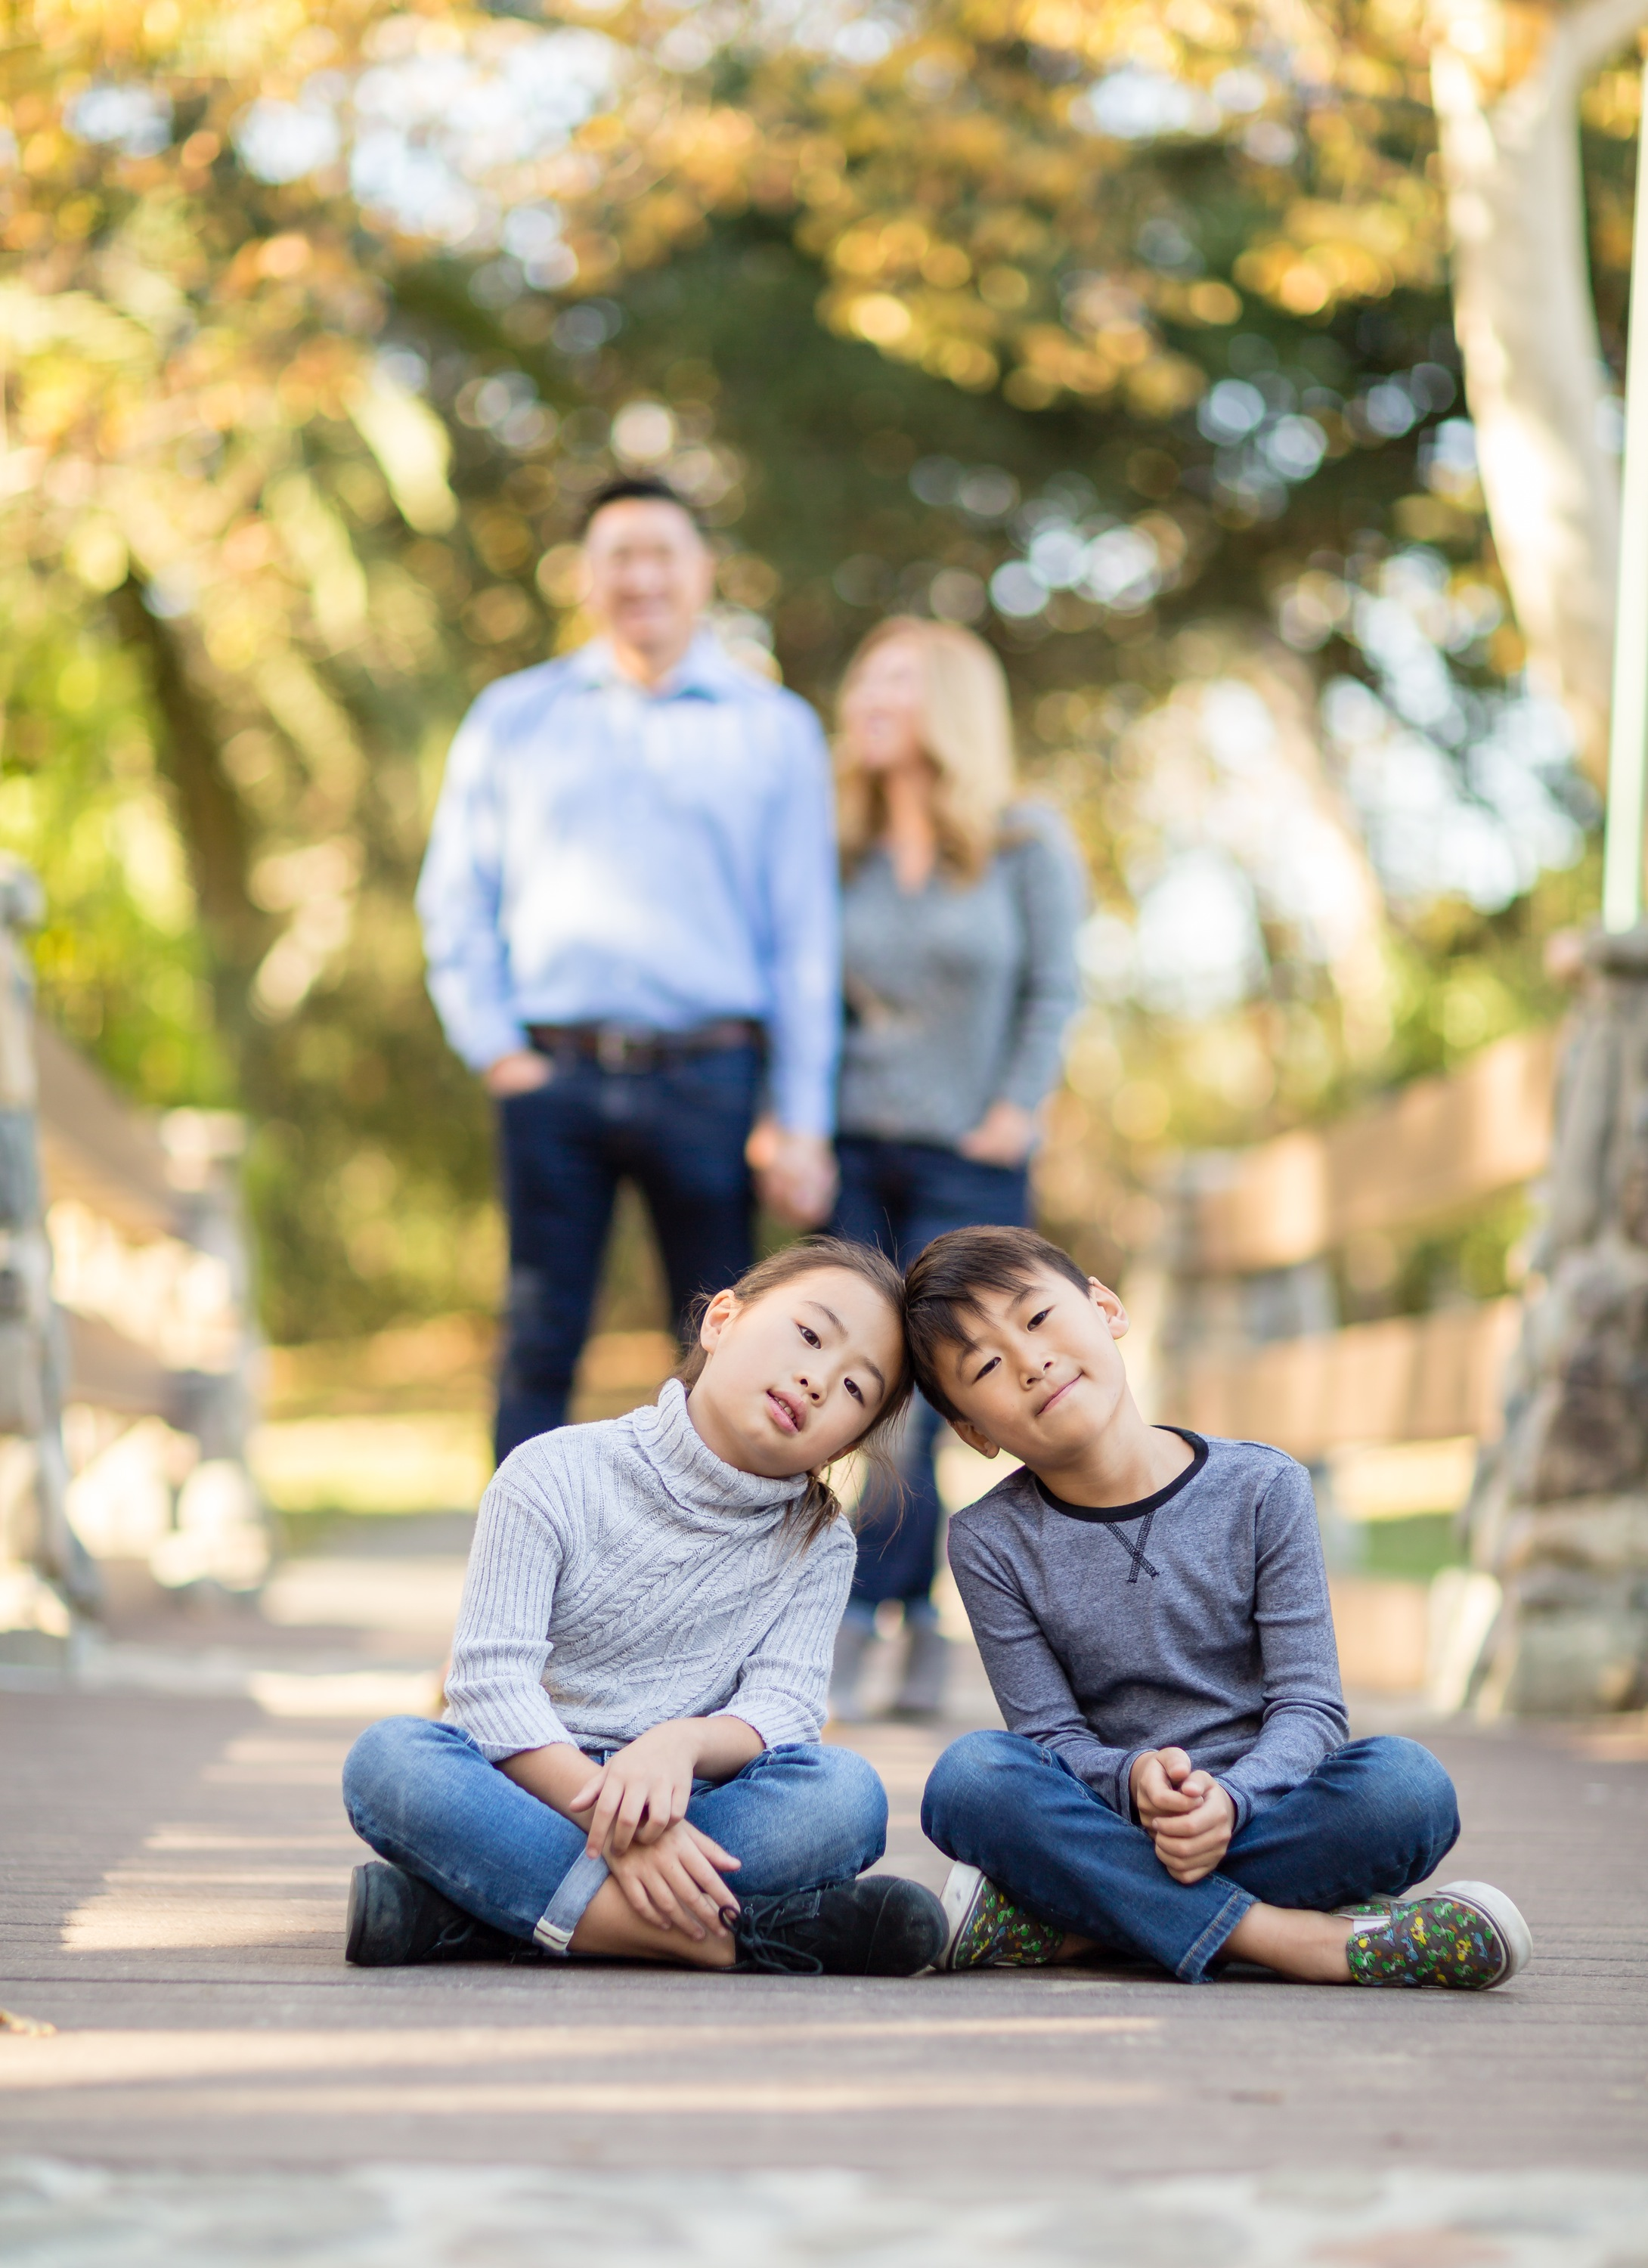 Family Portrait Kids Sitting in Front Parents Standing in Background Irvine Regional Park.jpg